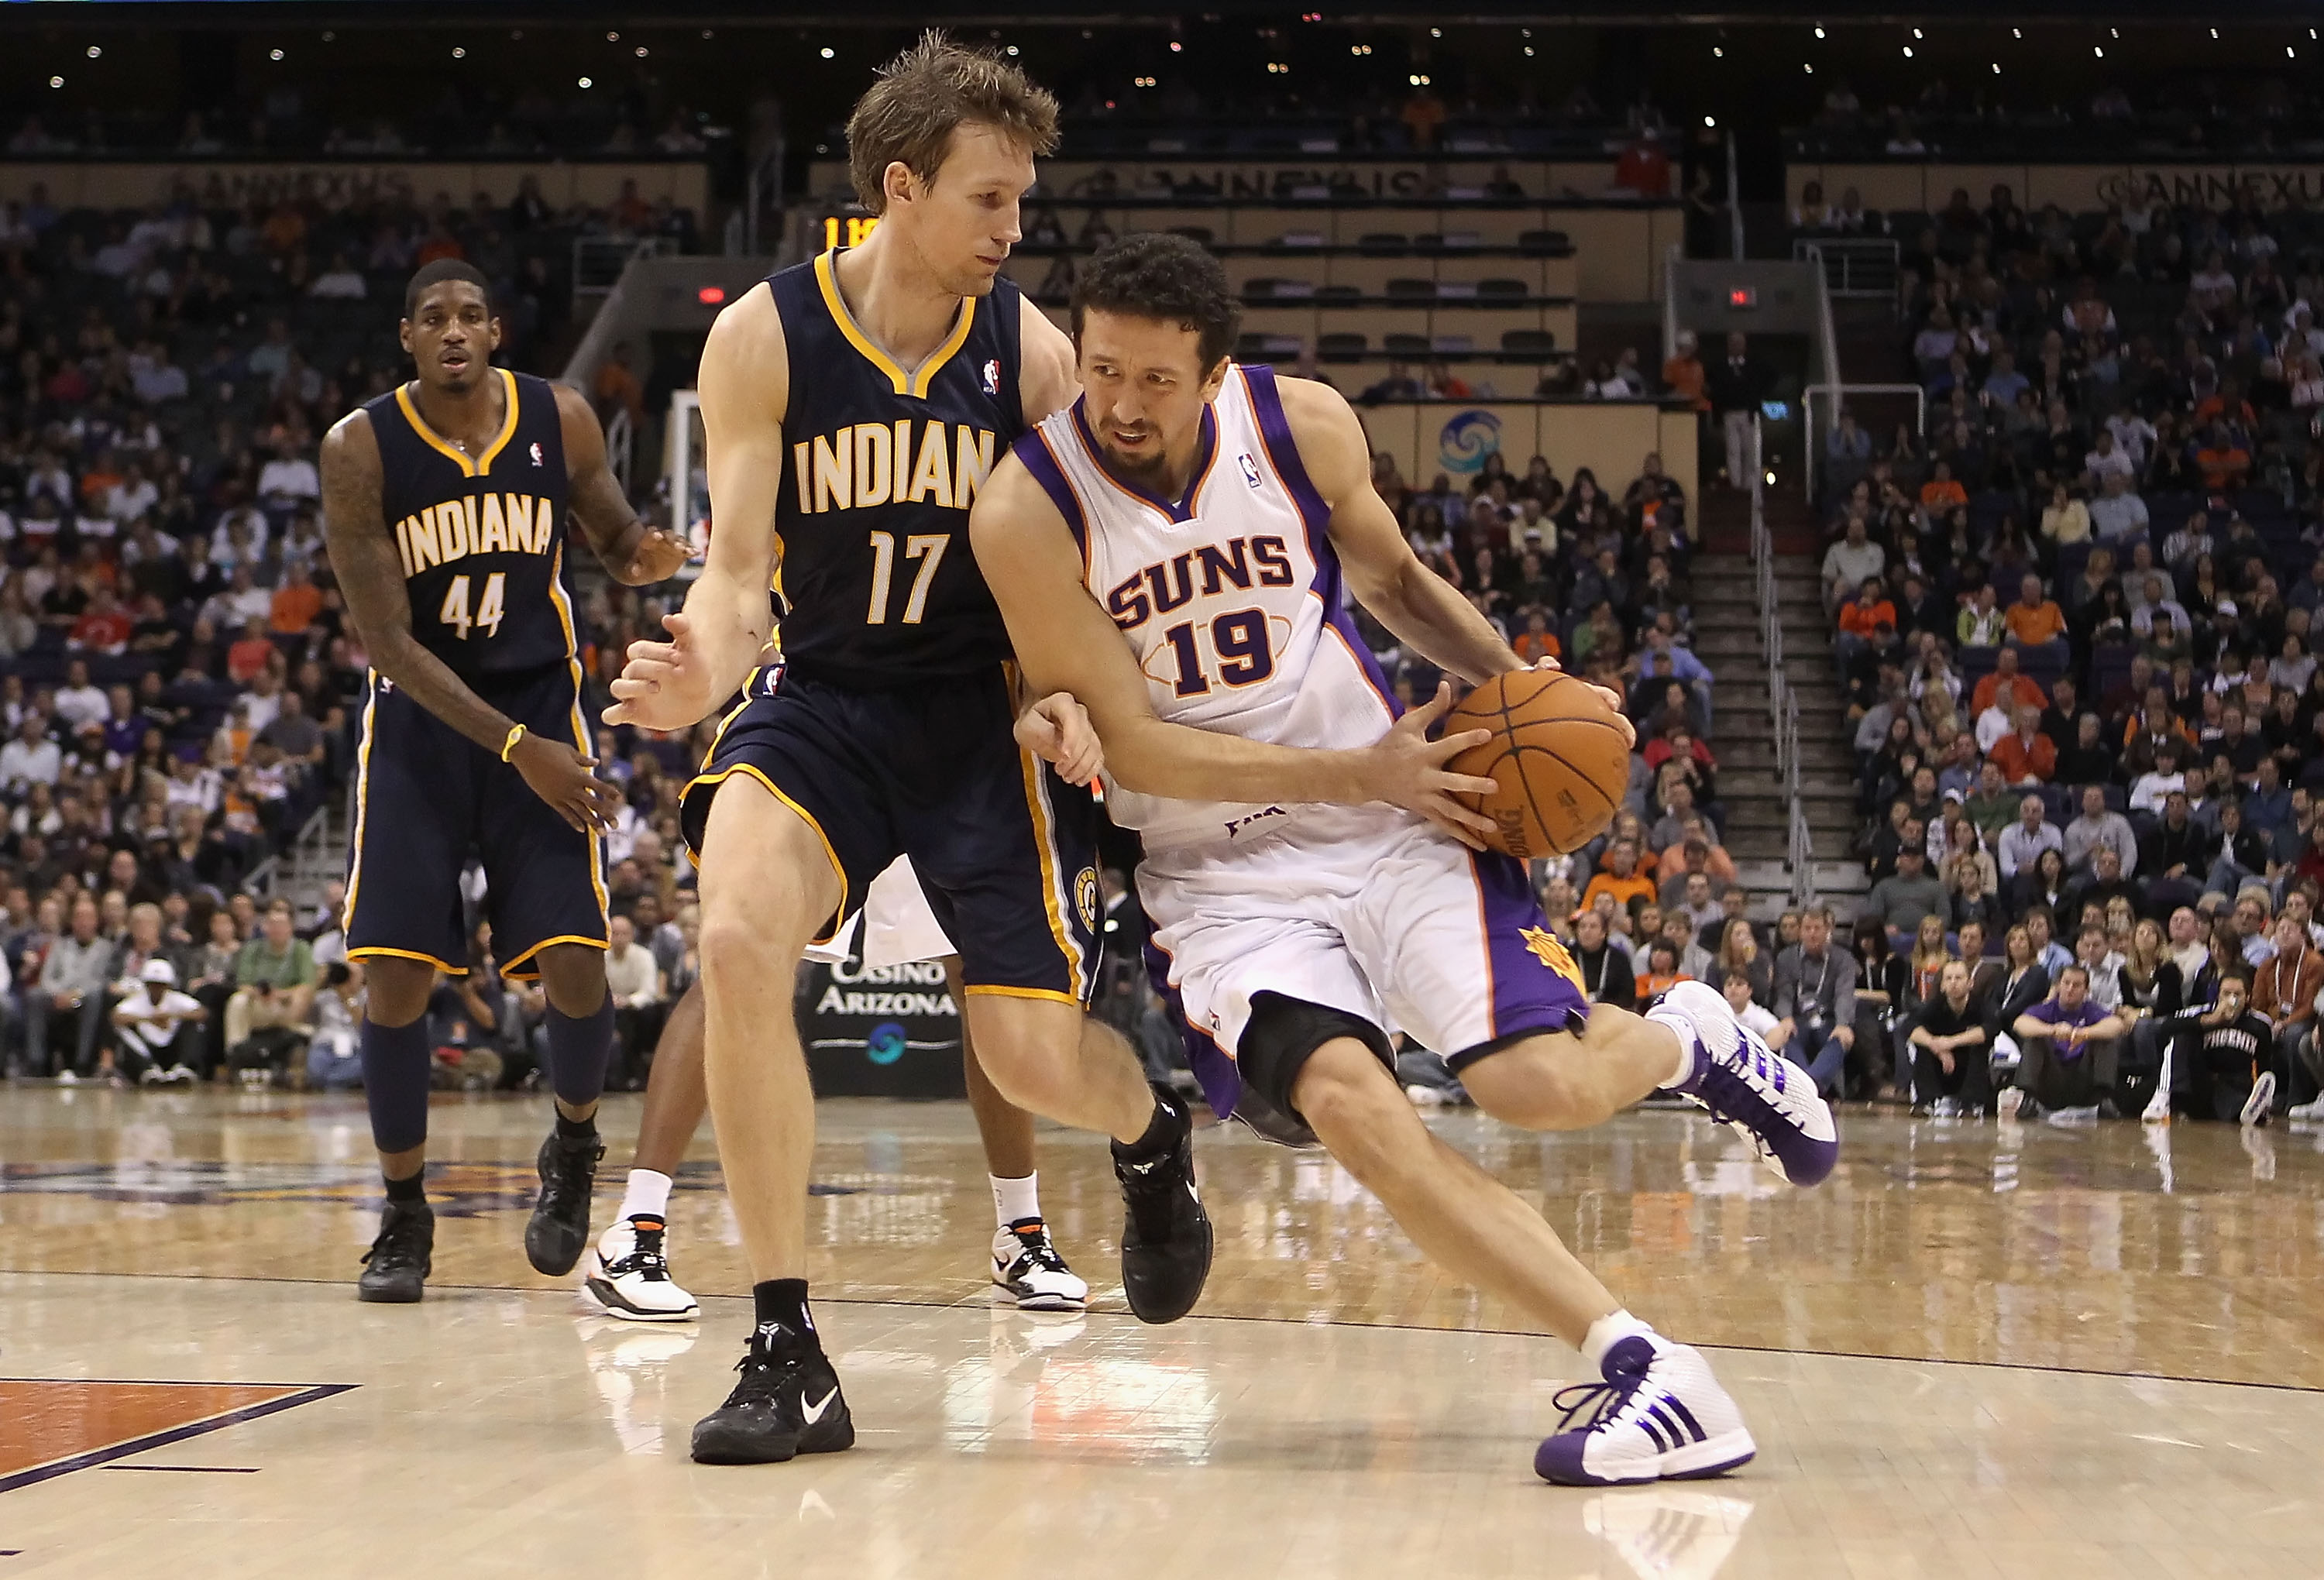 PHOENIX - DECEMBER 03:  Hedo Turkoglu #19 of the Phoenix Suns drives with the ball against Mike Dunleavy #17 of the Indiana Pacers during the NBA game at US Airways Center on December 3, 2010 in Phoenix, Arizona.  The Suns defeated the Pacers 105-97.  NOT